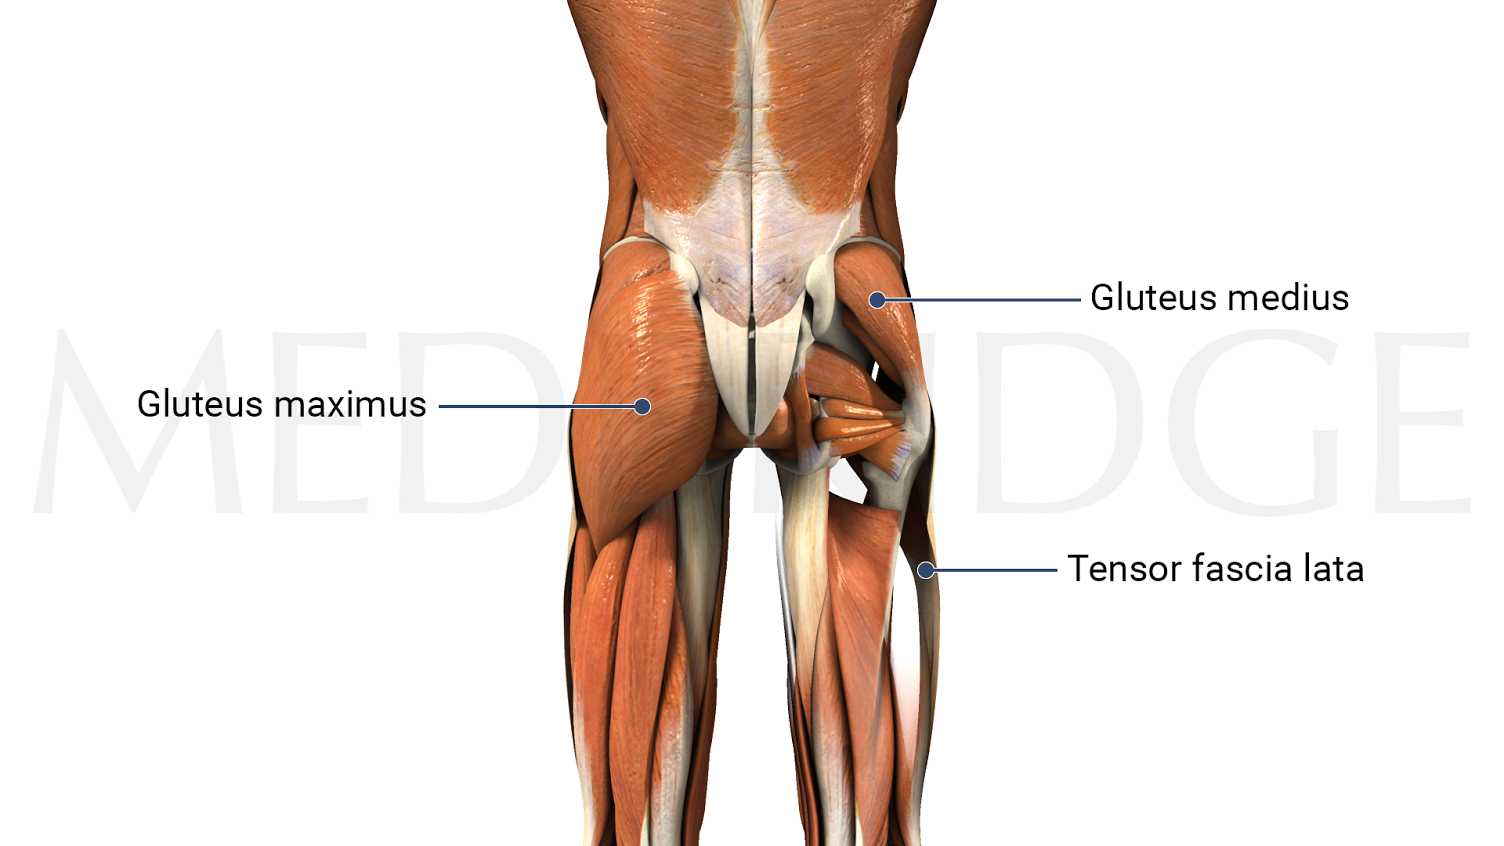 Best Exercises for the Gluteus Medius